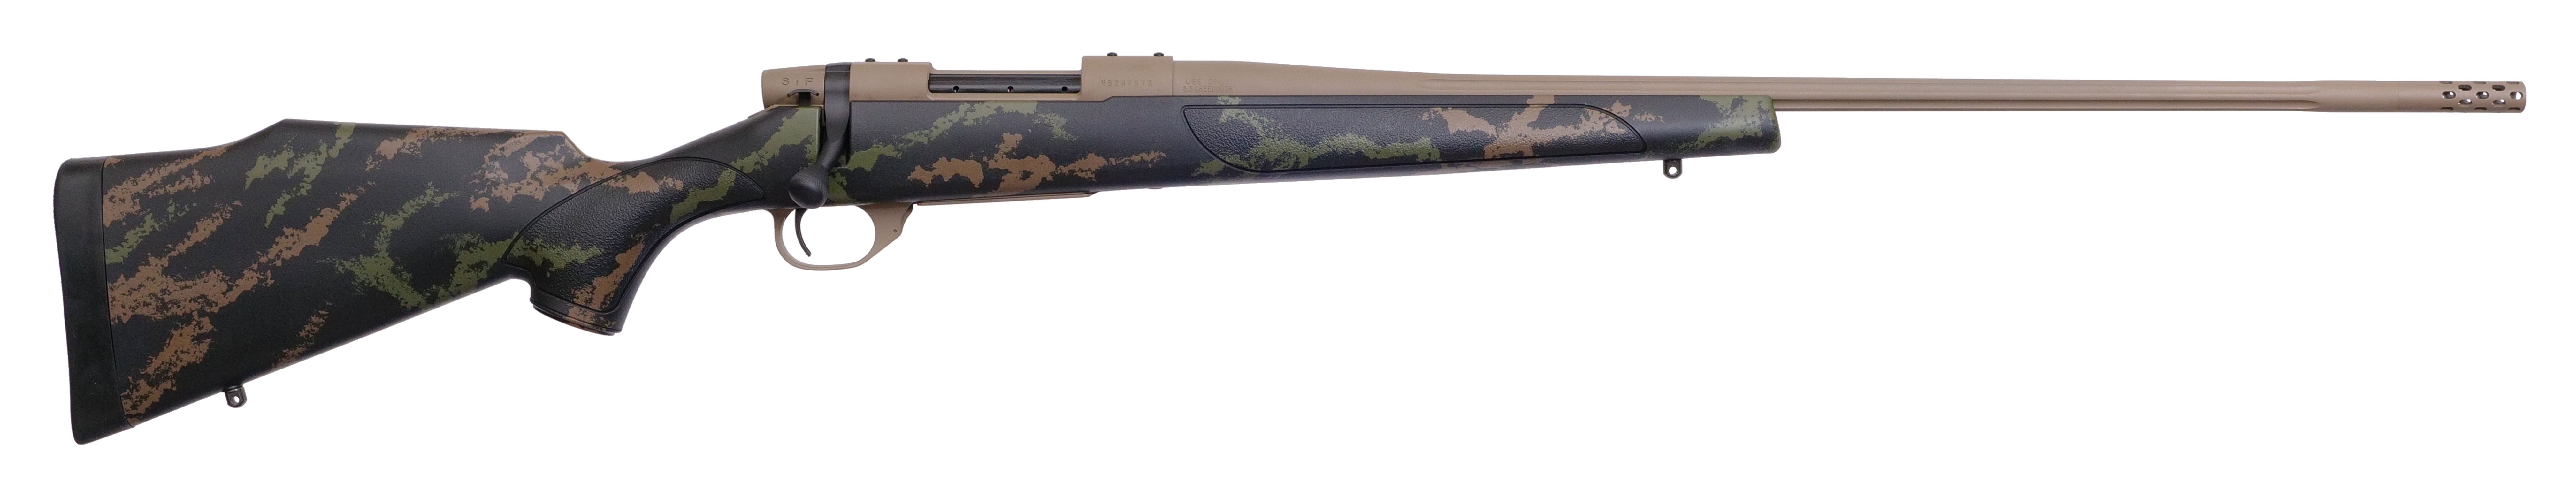 Weatherby VHC300NR6B Vanguard High Country 300 Win Mag 3+1 26